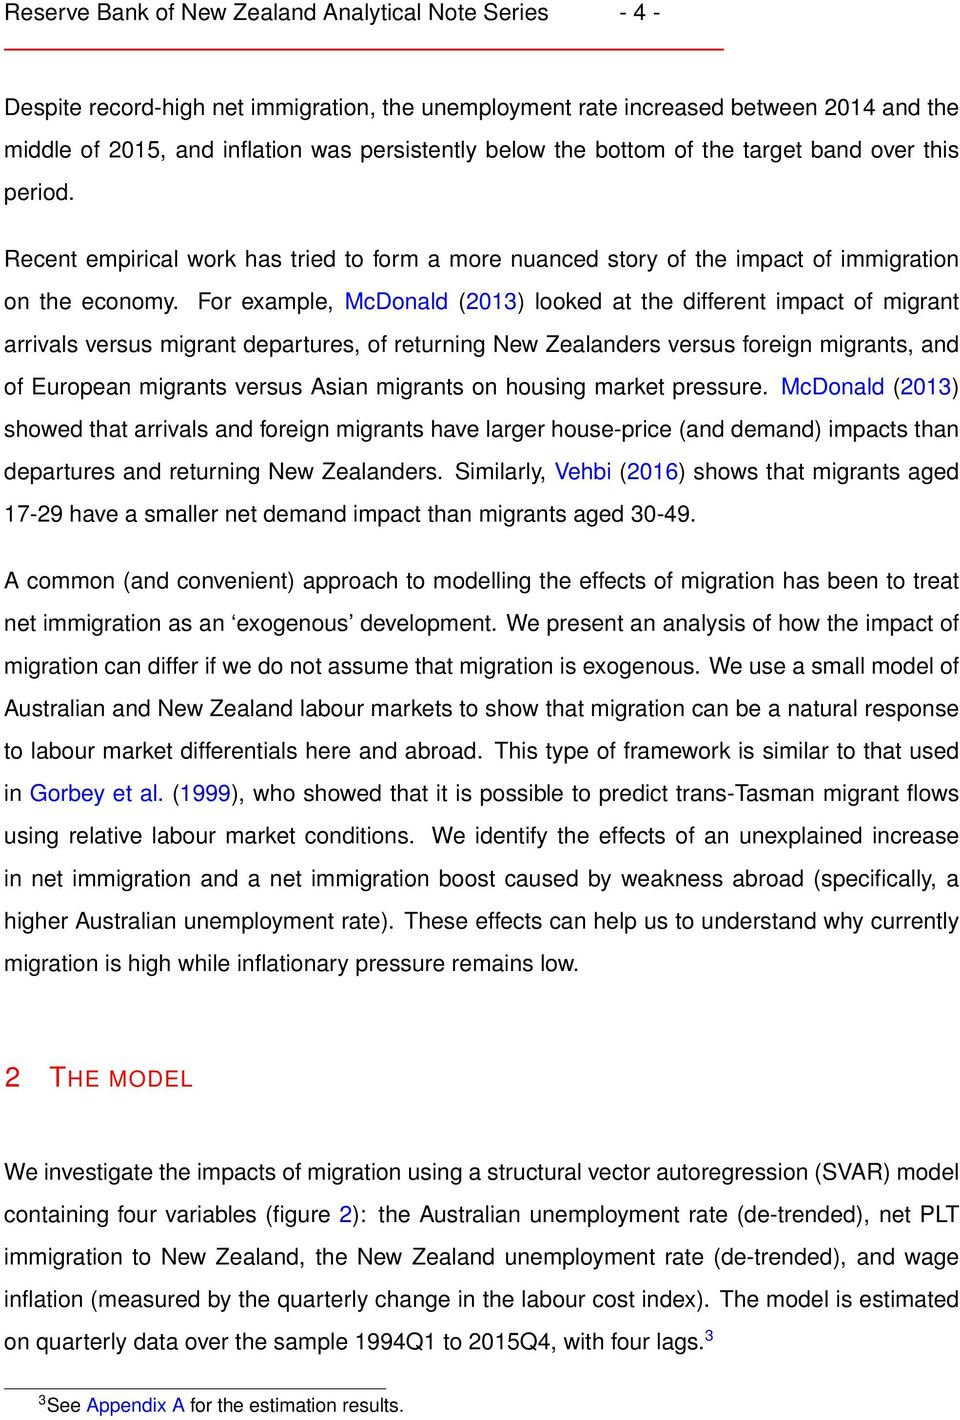 For example, McDonald (23) looked at the different impact of migrant arrivals versus migrant departures, of returning New Zealanders versus foreign migrants, and of European migrants versus Asian